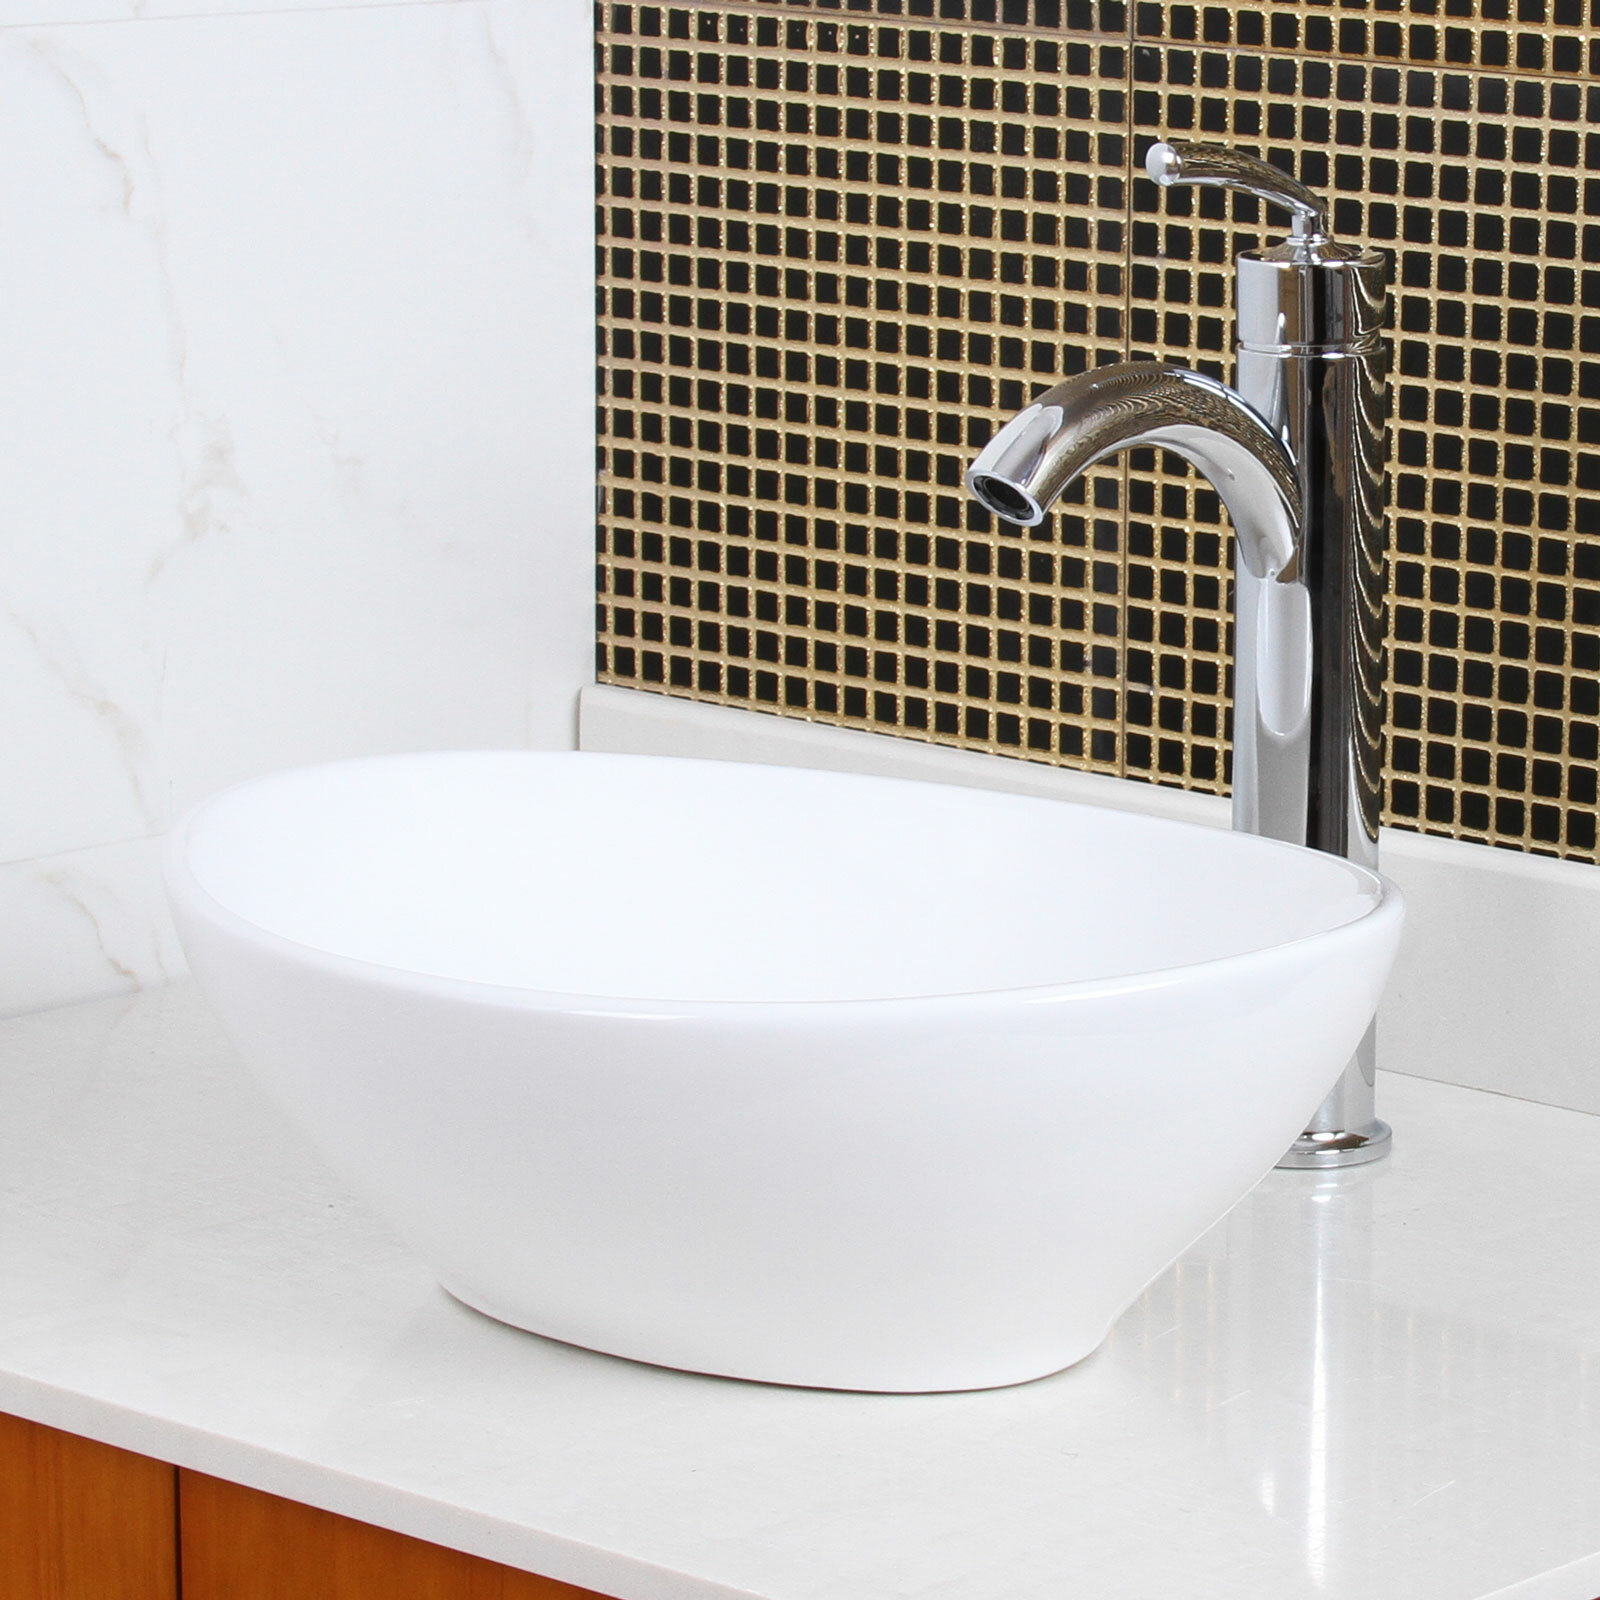 porcelain stanton inch inspiration home vanity design inspiring vessel white sink projects bathroom ideas sinks